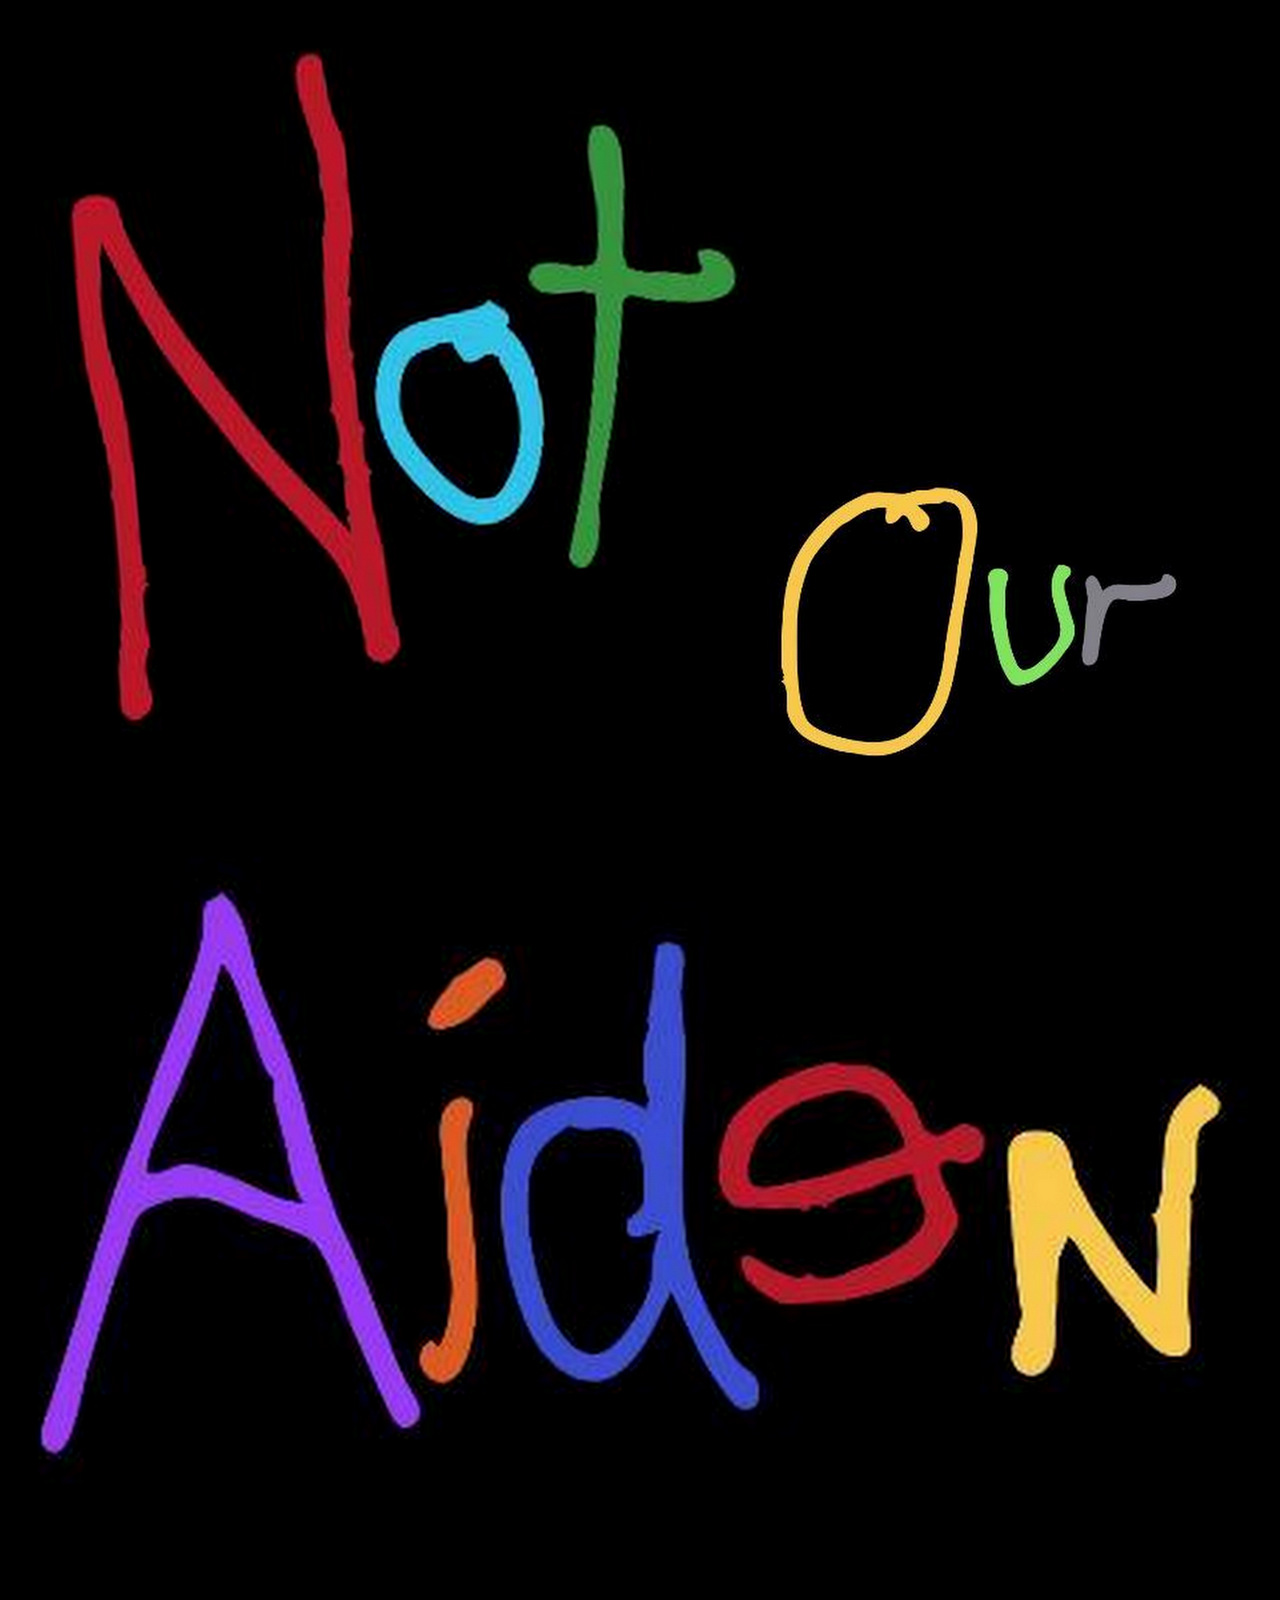 Not Our Aiden